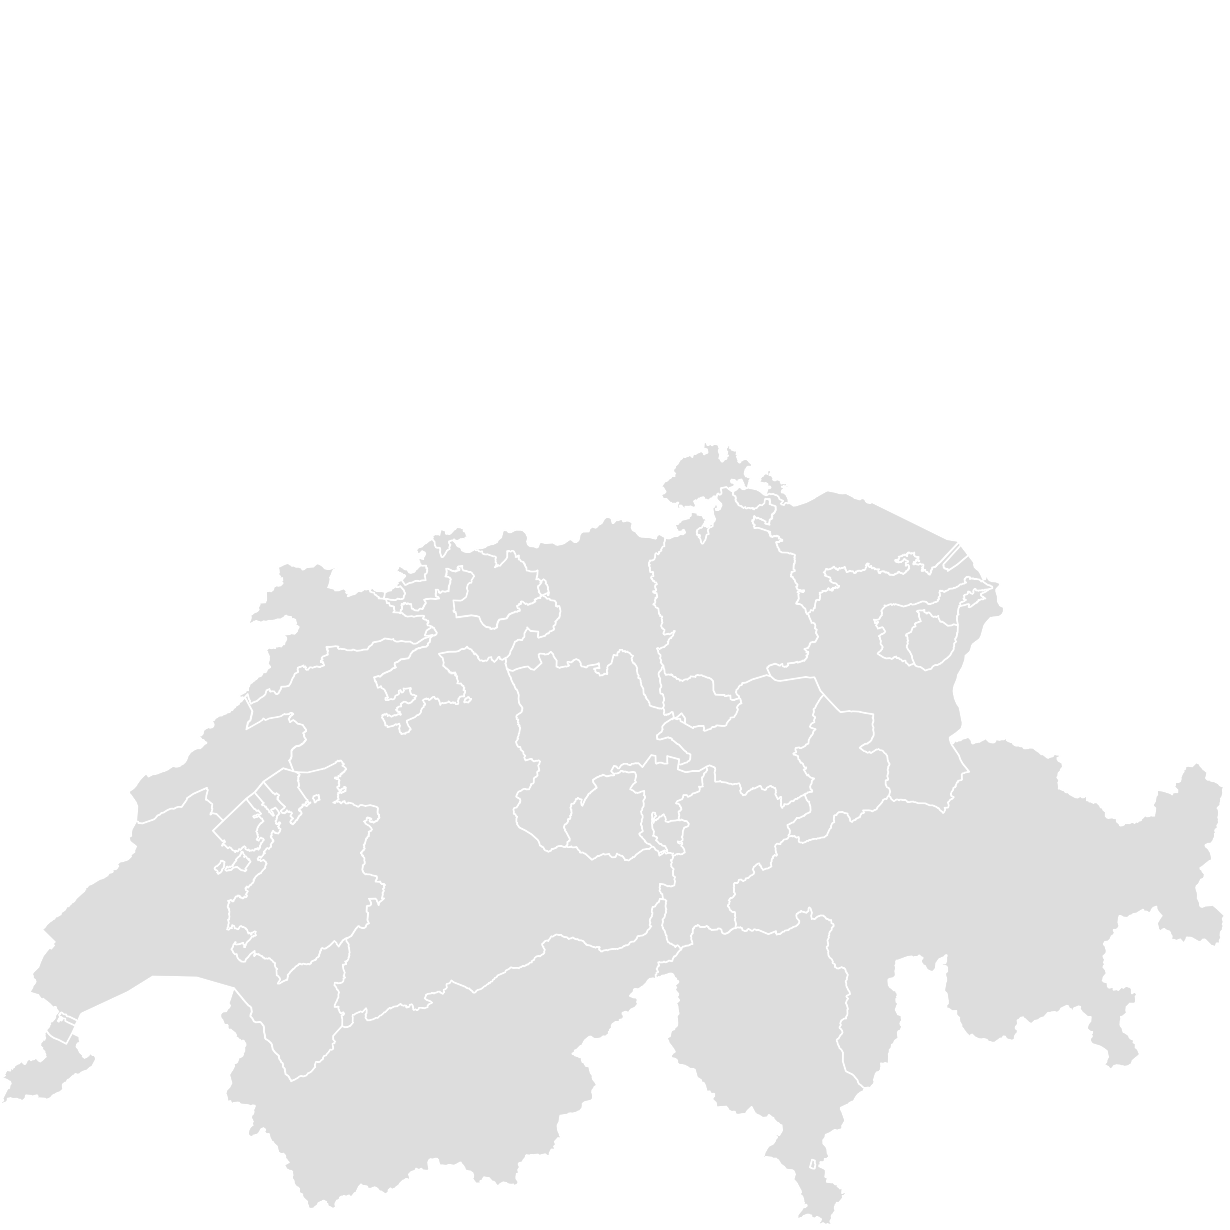 Printable Outline,Blank Map of SWITZERLAND